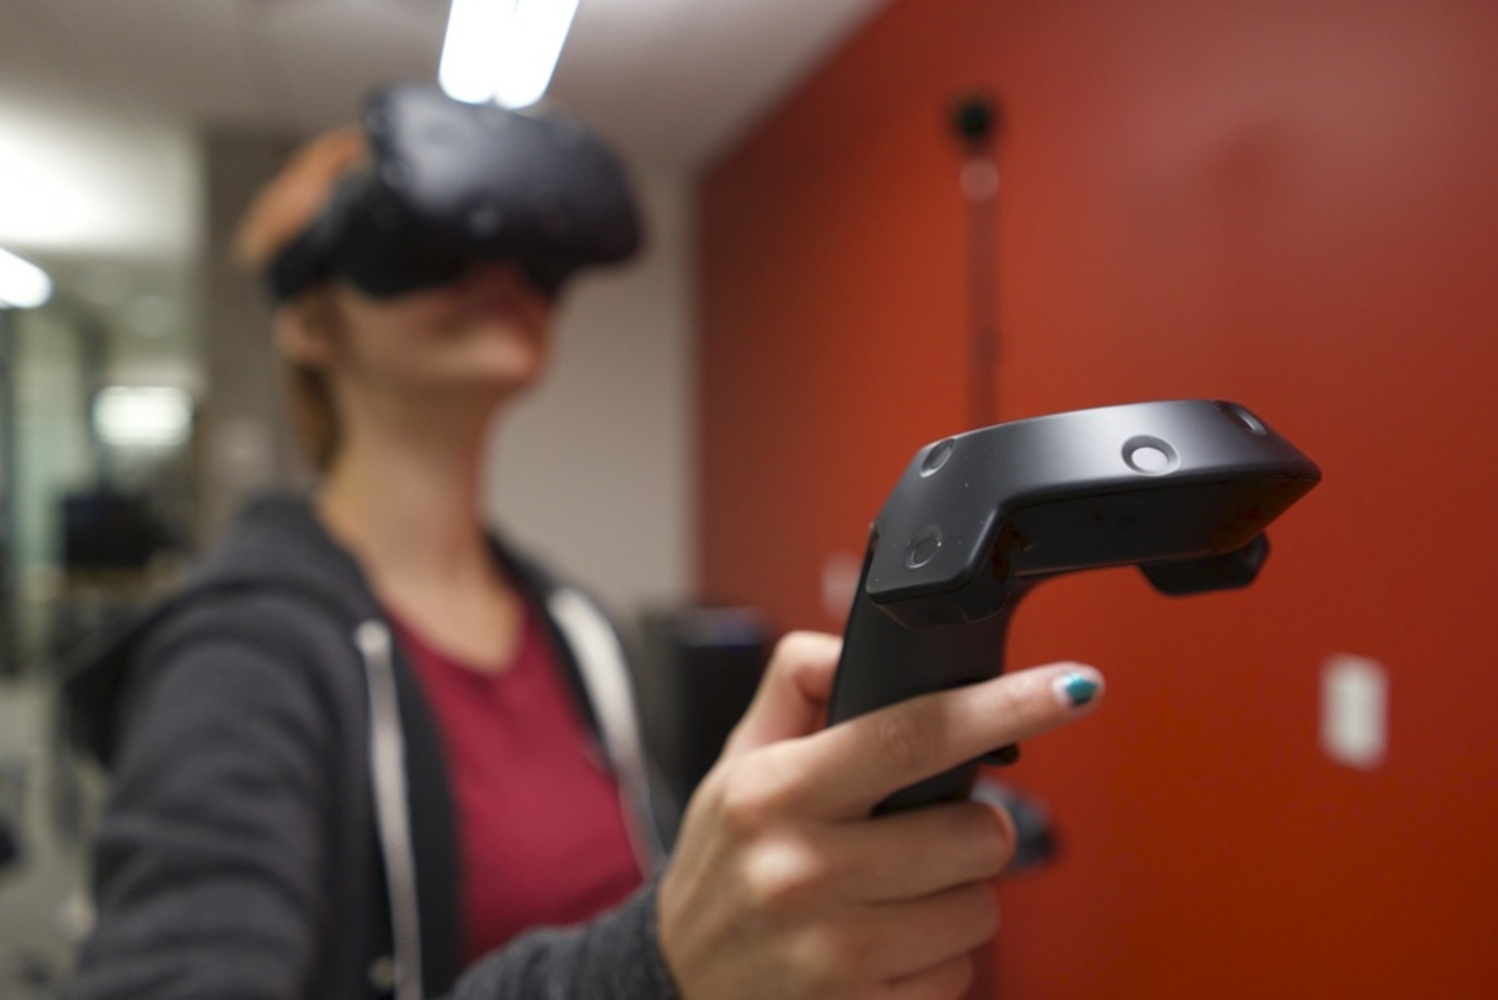 A person wearing a virtual reality headset holds a controller at arm's length.